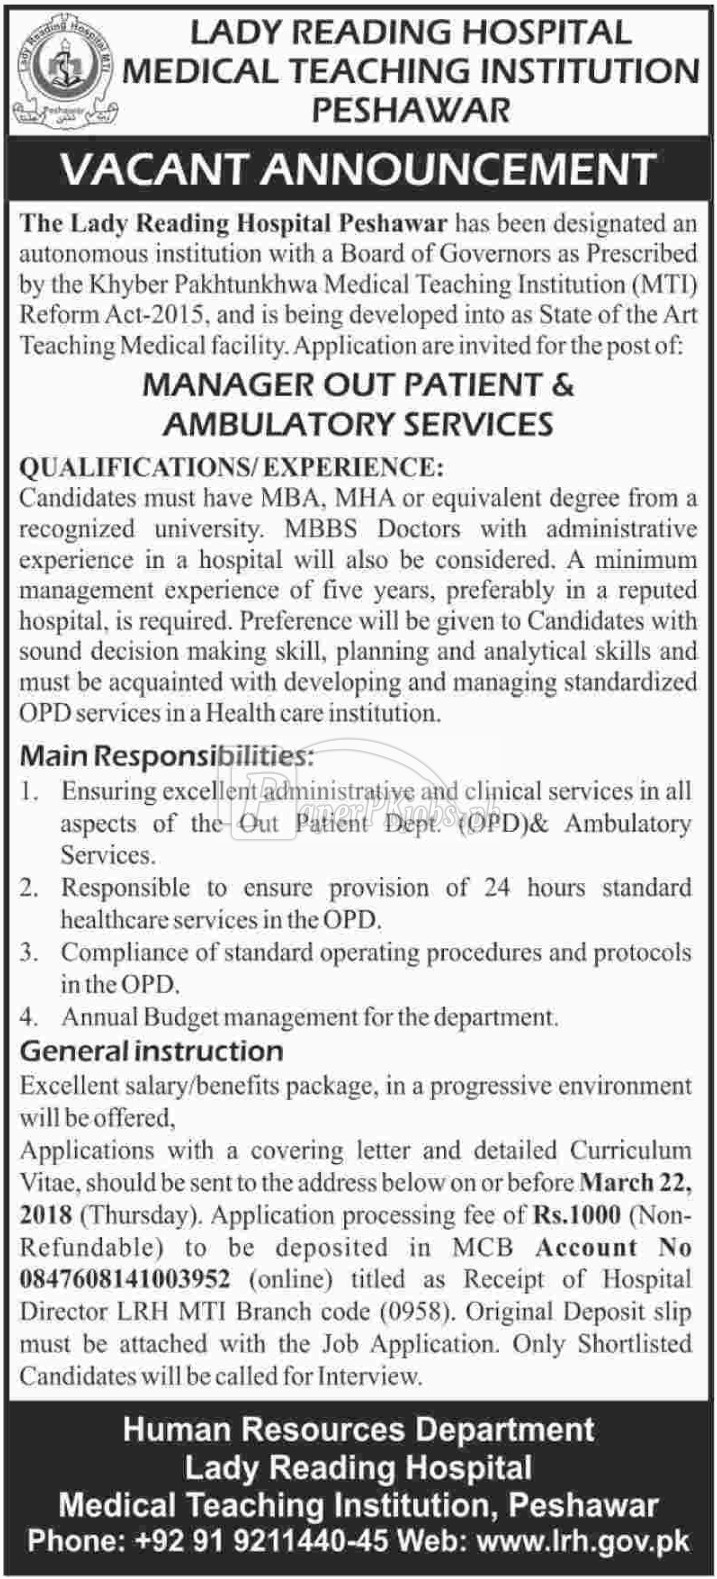 Lady Reading Hospital Medical Teaching Institution Peshawar Jobs 2018